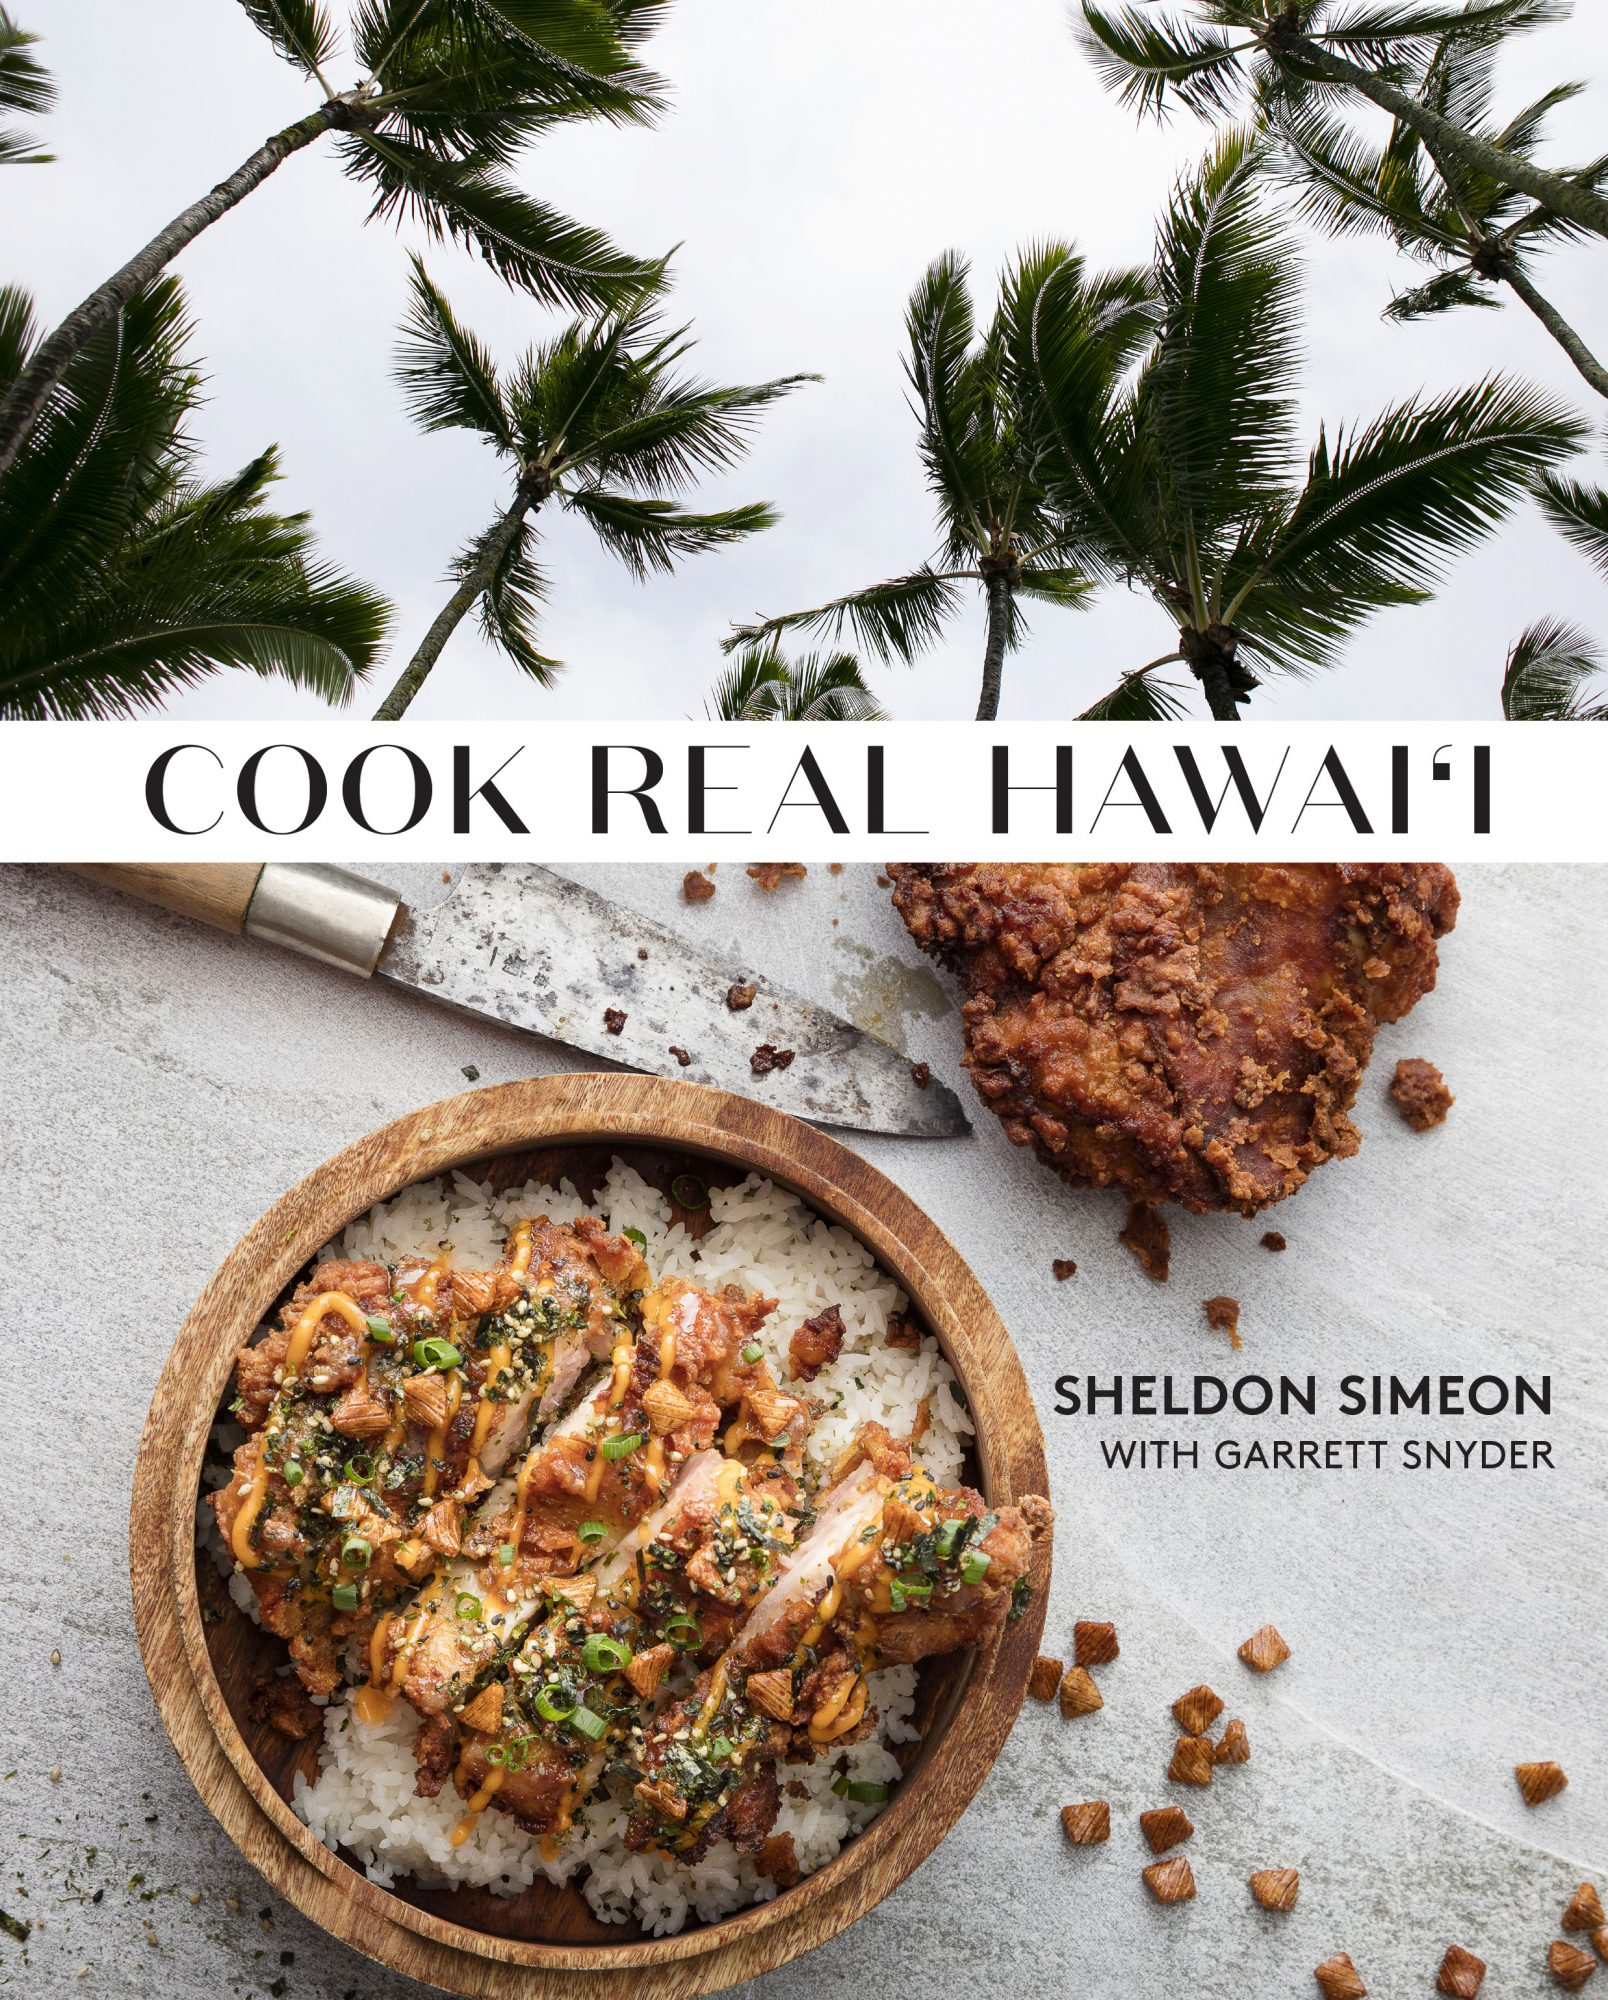 Cook Real Hawaii book cover